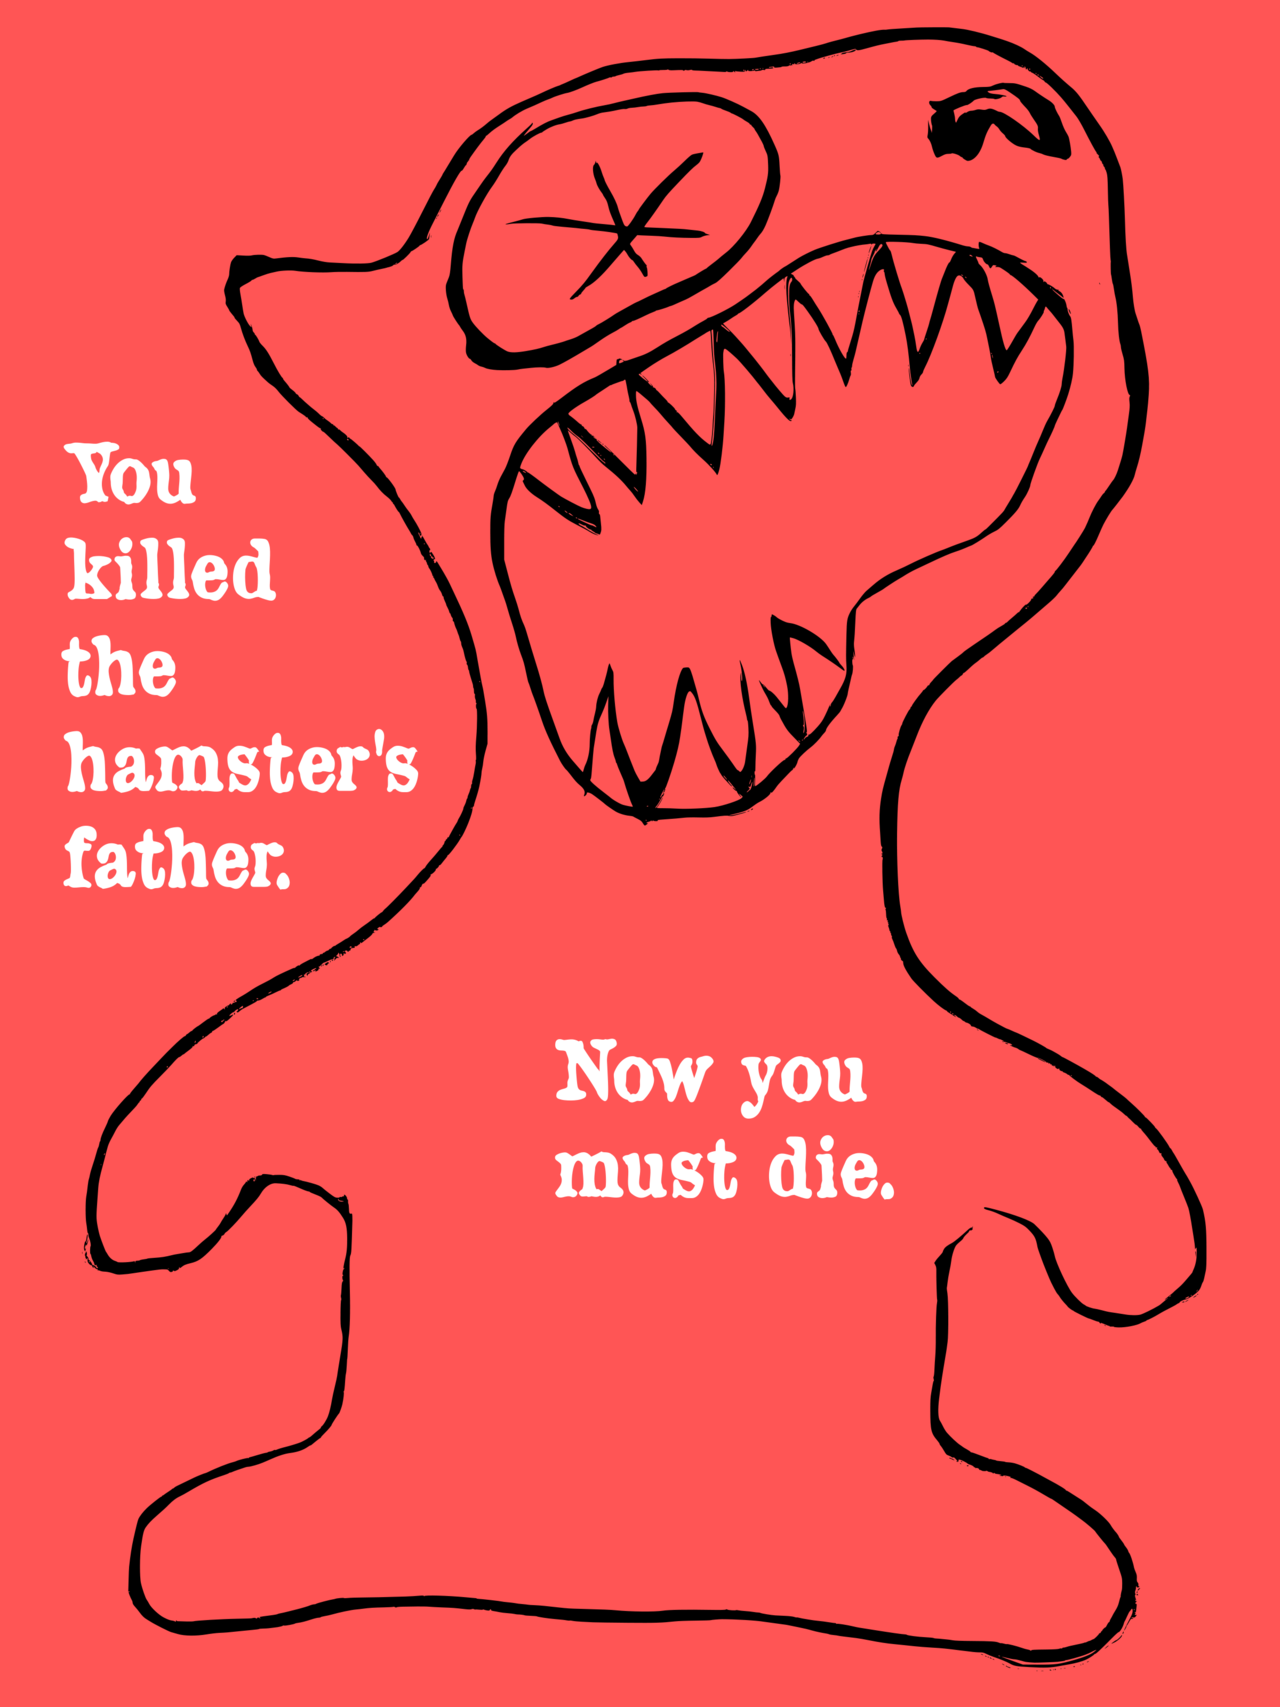 You killed the hamster's father. Now you must die. Watch your back, all my fabulous followers. xox, Jay, Chief Director, JDM Creative Industries